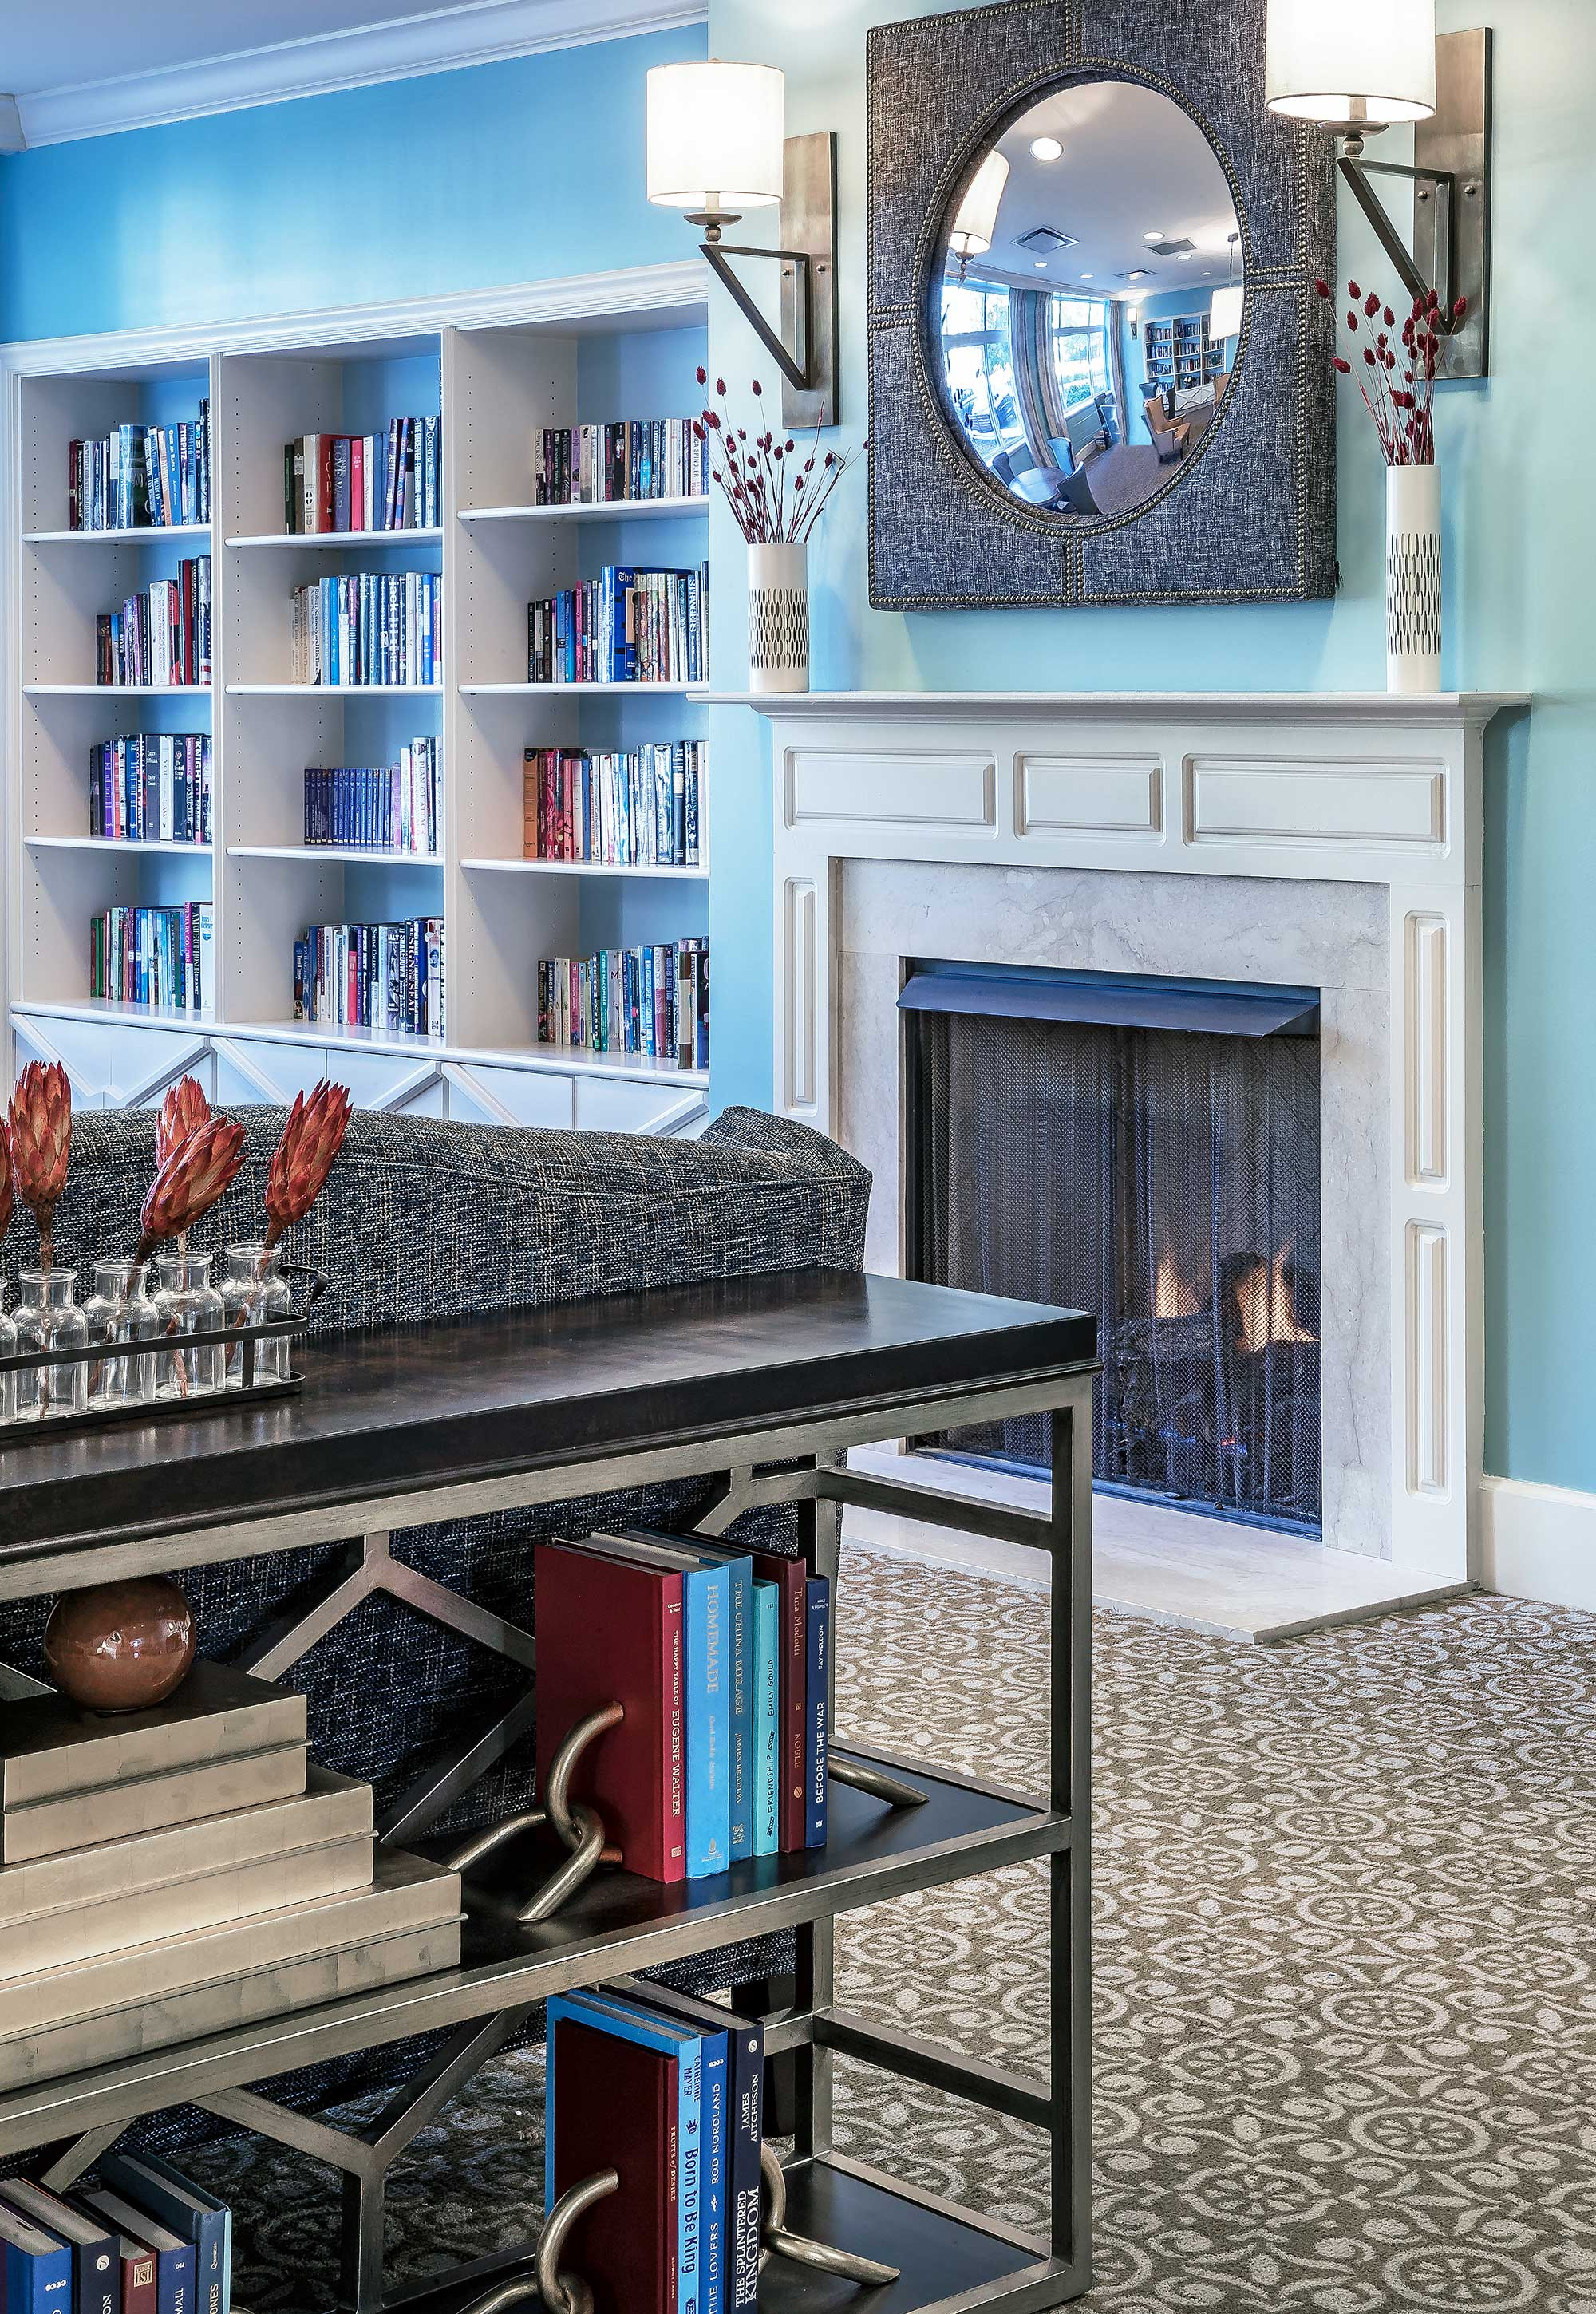 Common area with fireplace and shelves filled with books